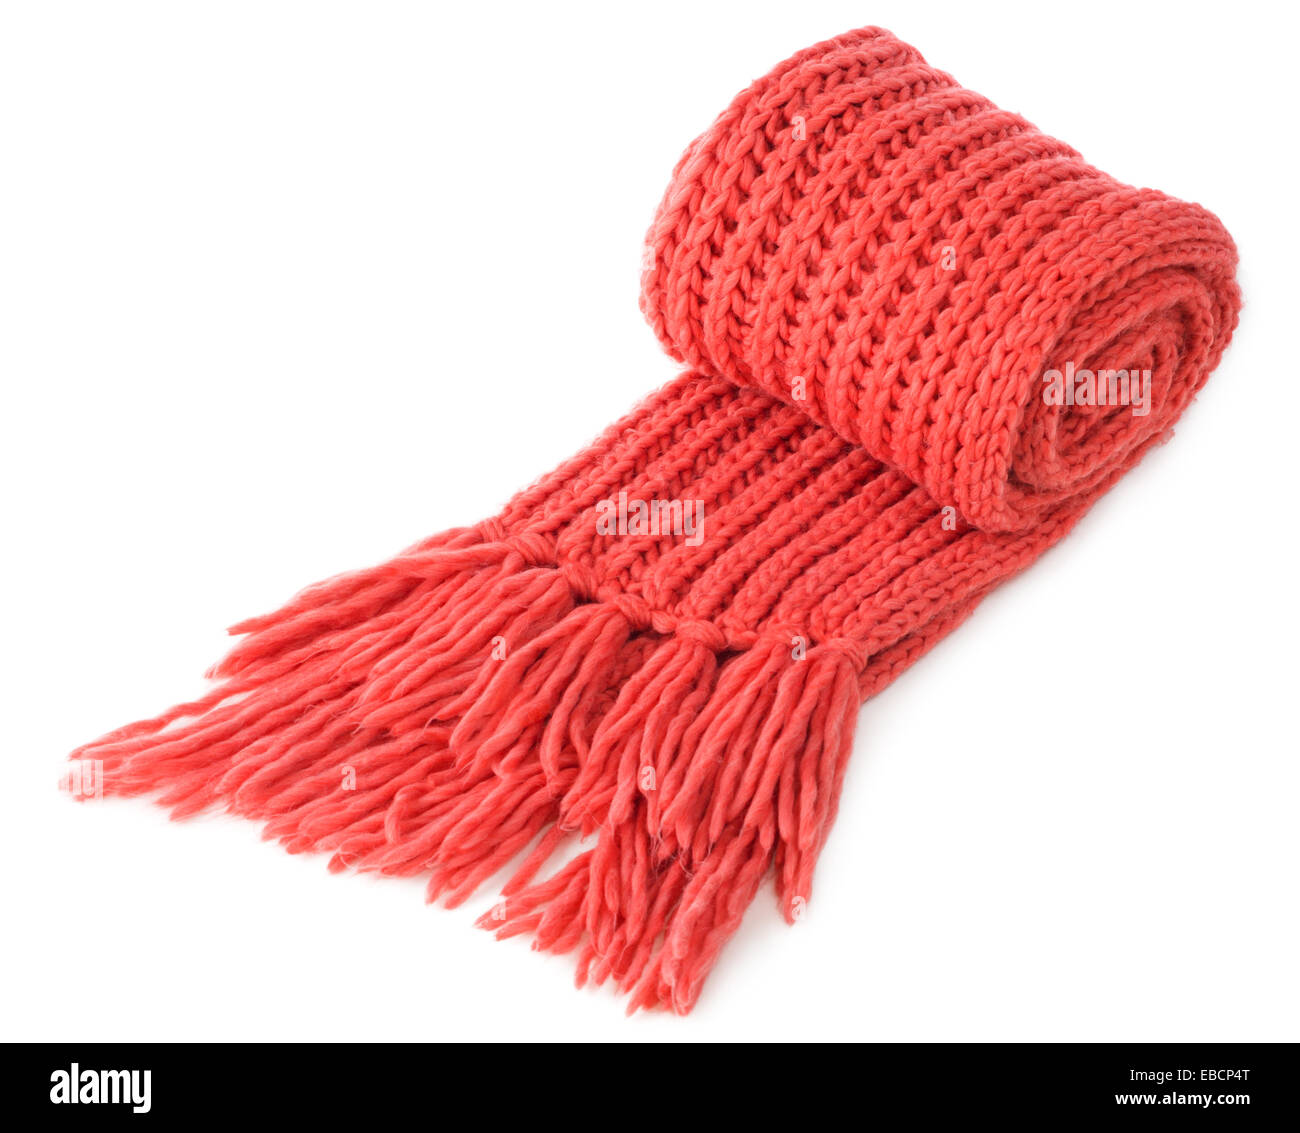 Red warm wool scarf isolated on white background - Stock Image